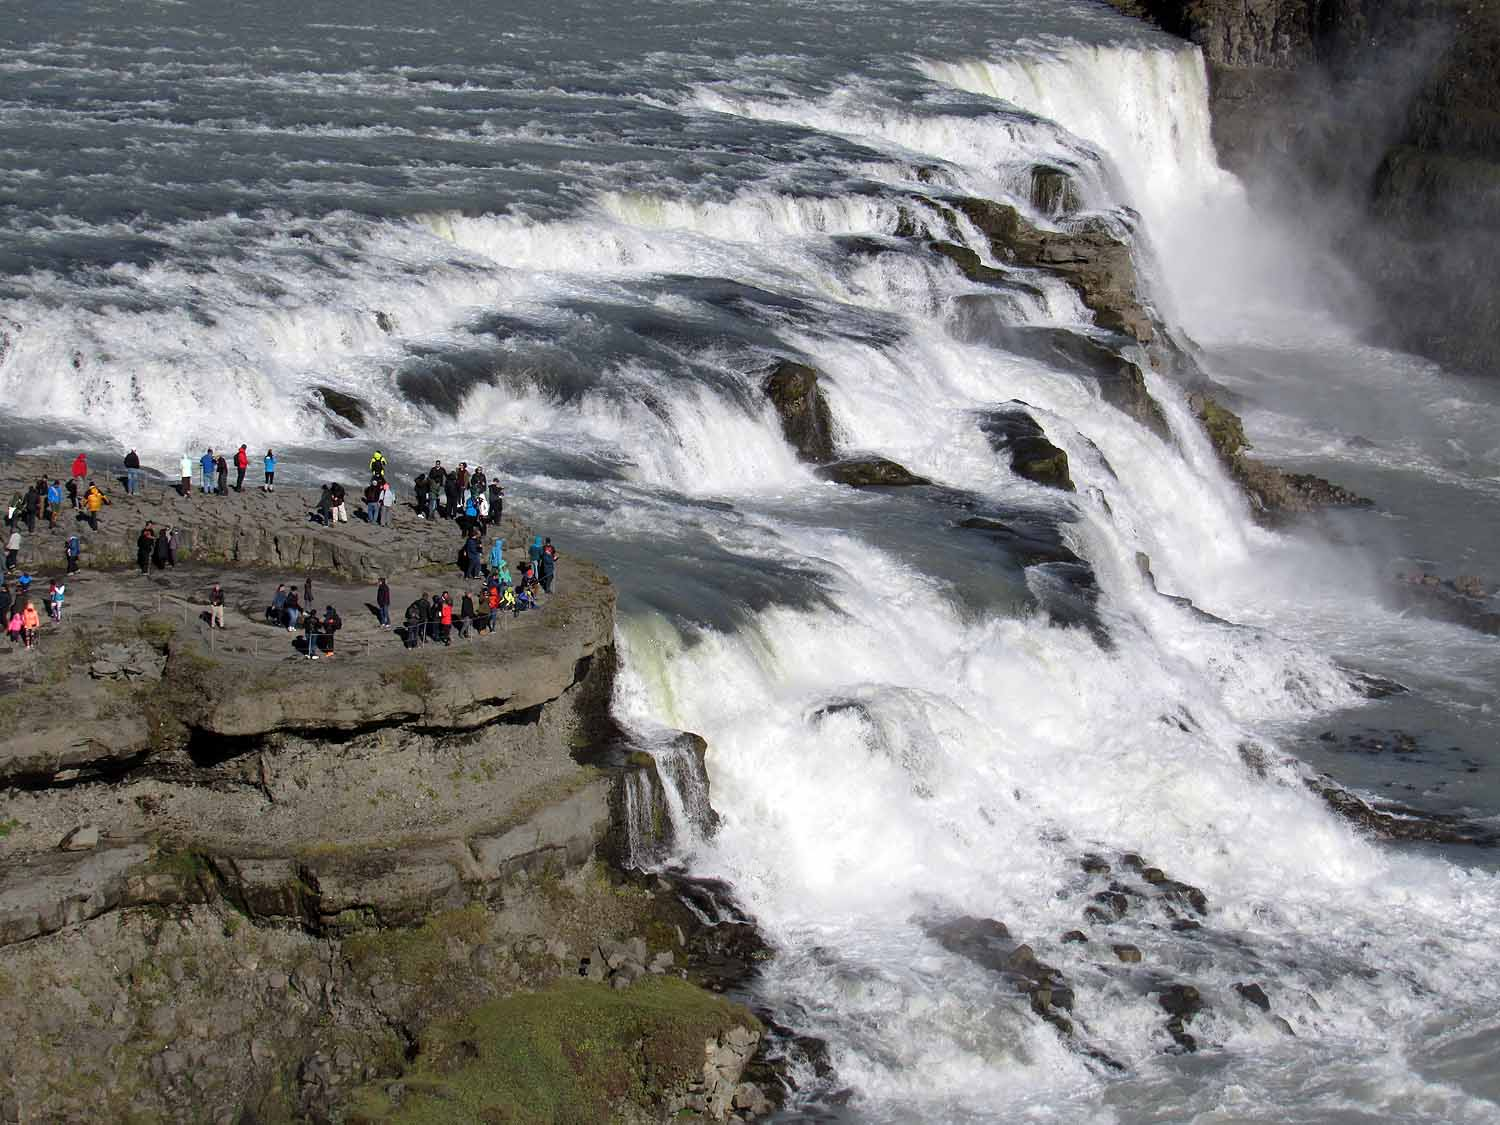 iceland-gullfoss-waterfall-huge-viewing-platform.JPG